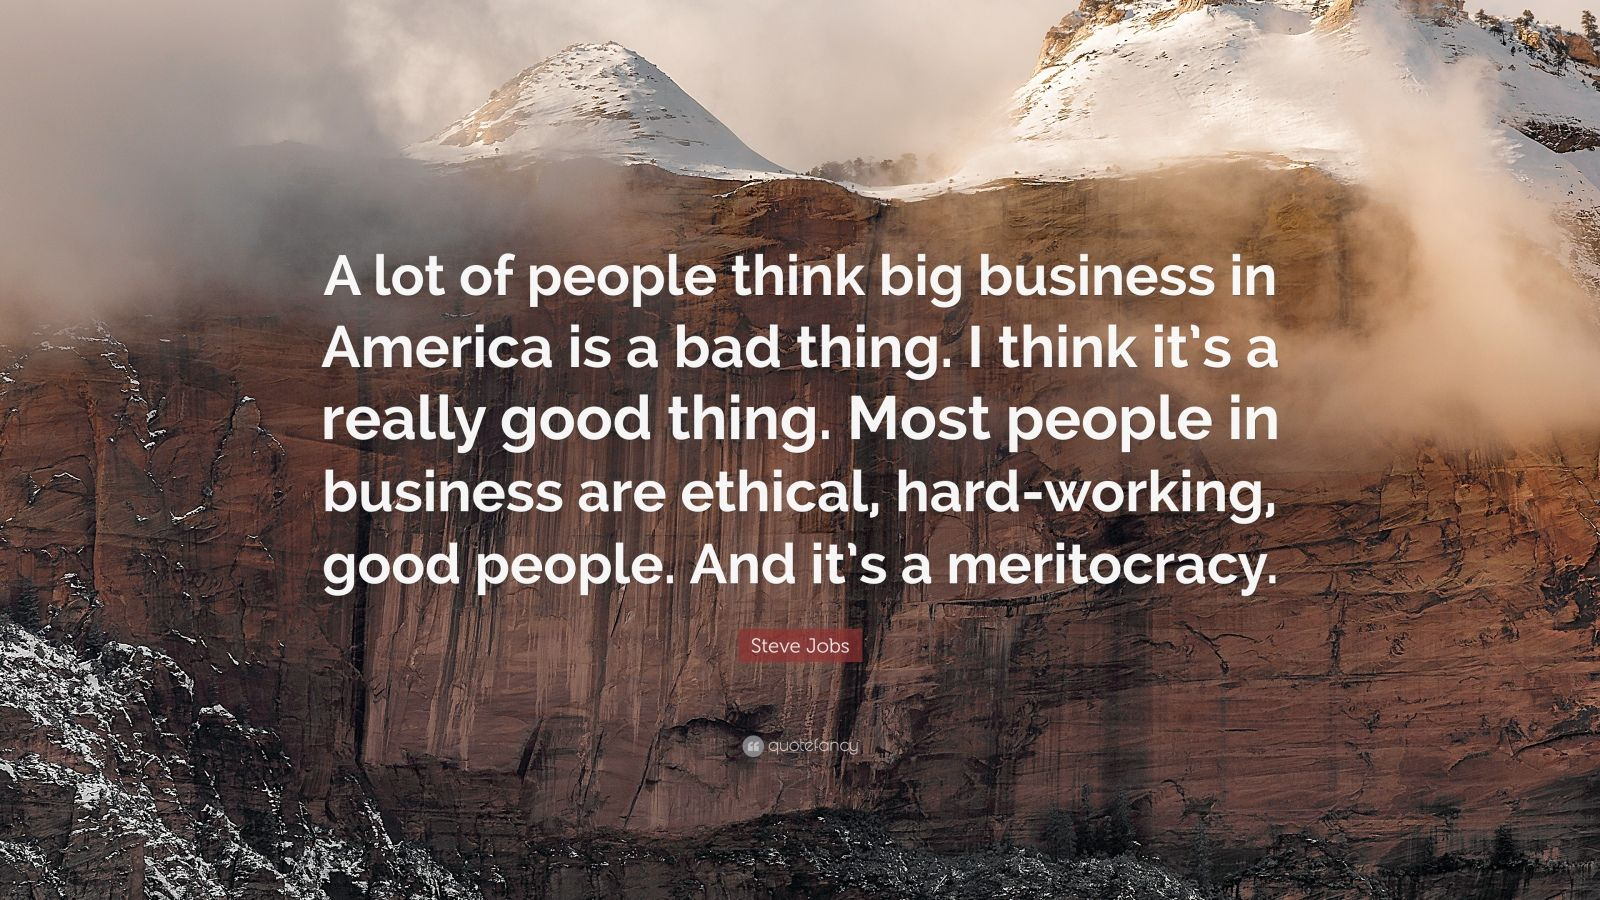 """Steve Jobs Quote: """"A lot of people think big business in America is a bad thing. I think it's a really good thing. Most people in business are ethical, hard-working, good people. And it's a meritocracy."""""""